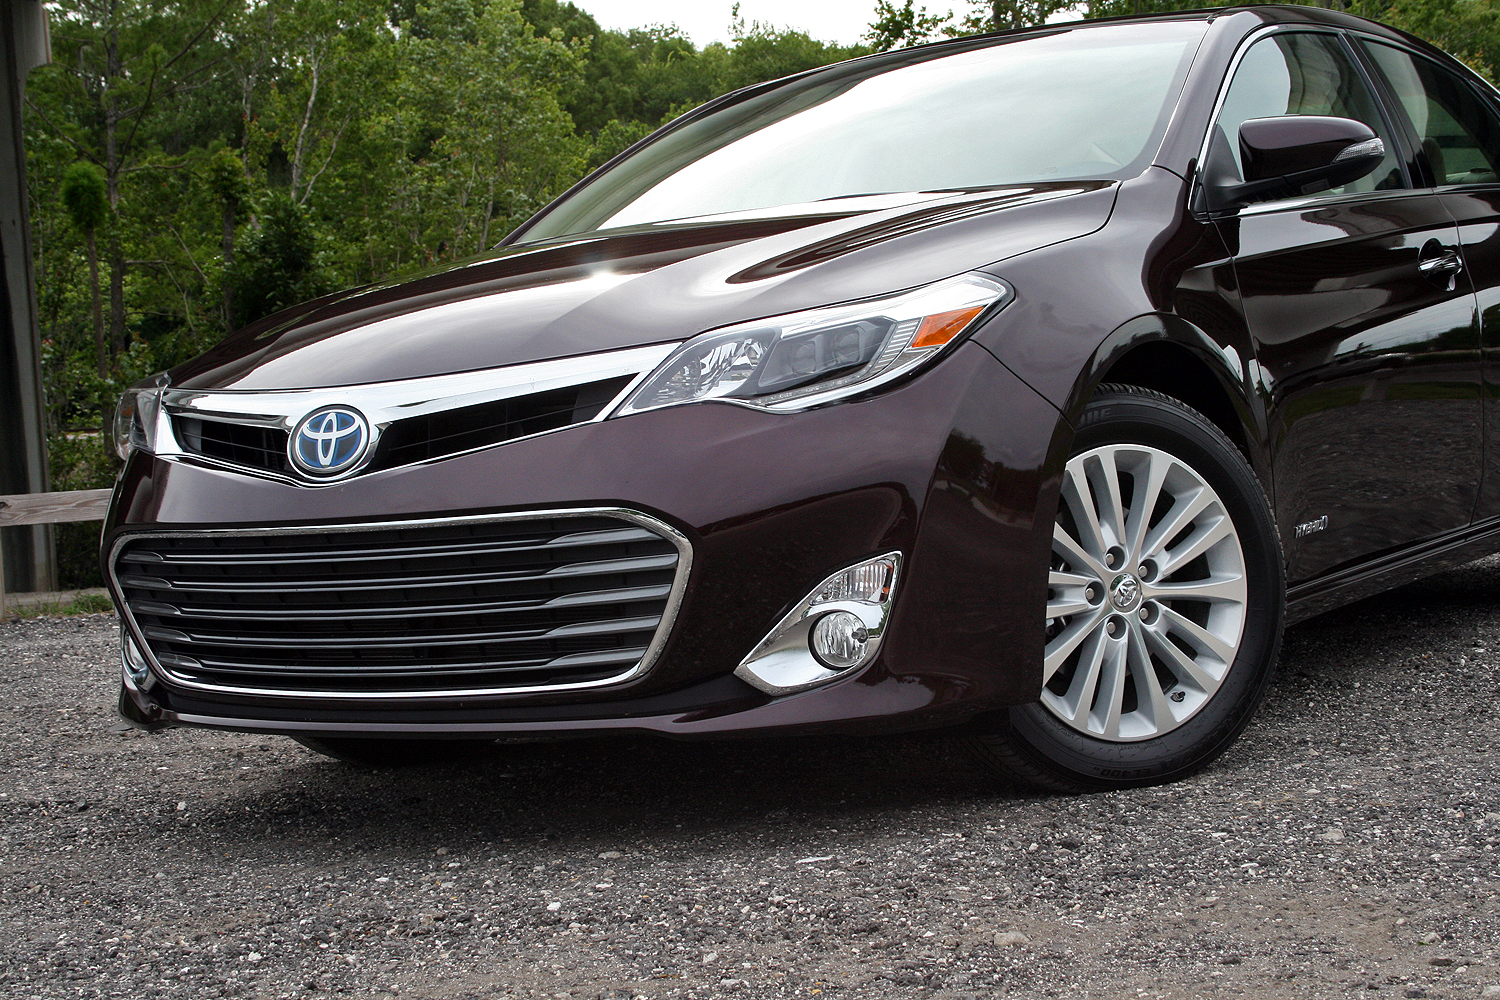 2015 toyota avalon hybrid driven picture 632295 car review top speed. Black Bedroom Furniture Sets. Home Design Ideas